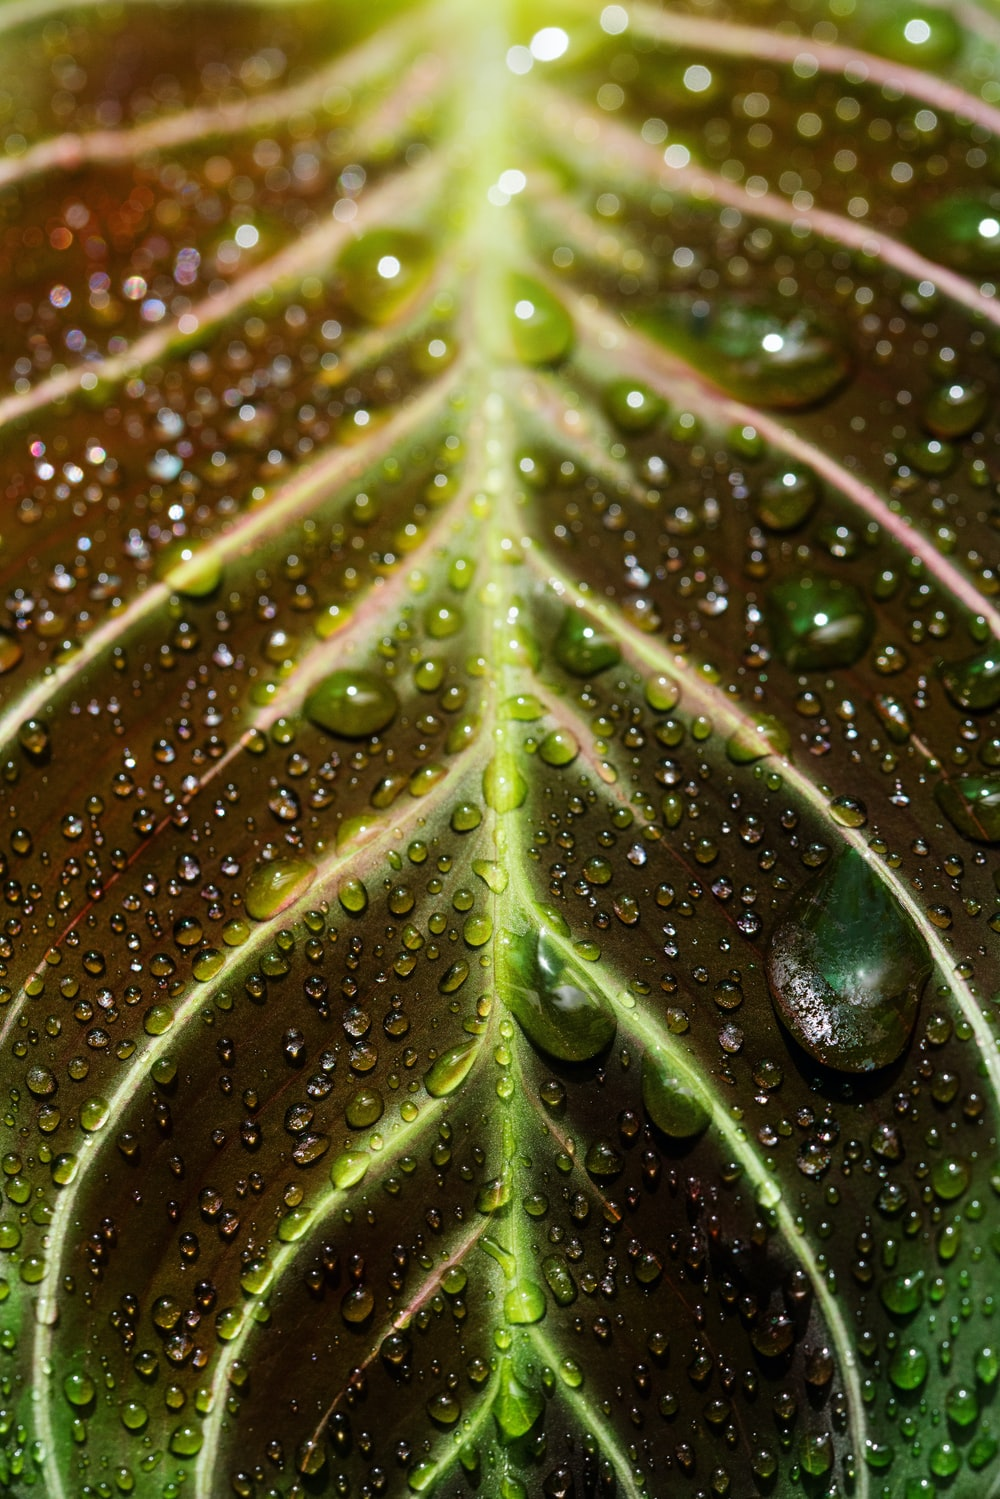 close-up photography of water dews on leaf